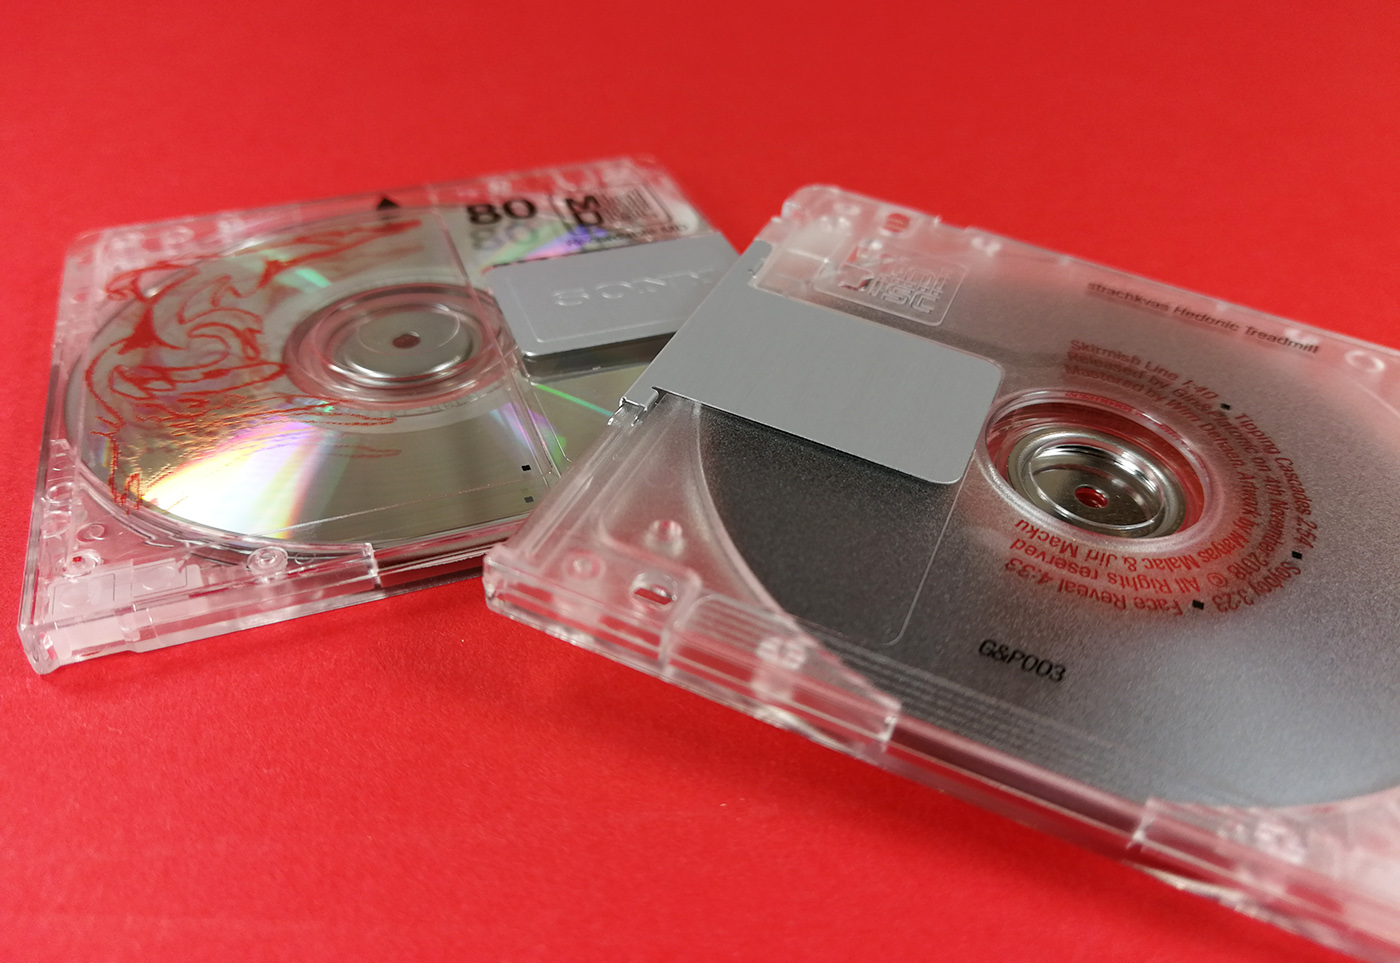 Clear MiniDiscs with red and black on-body printing